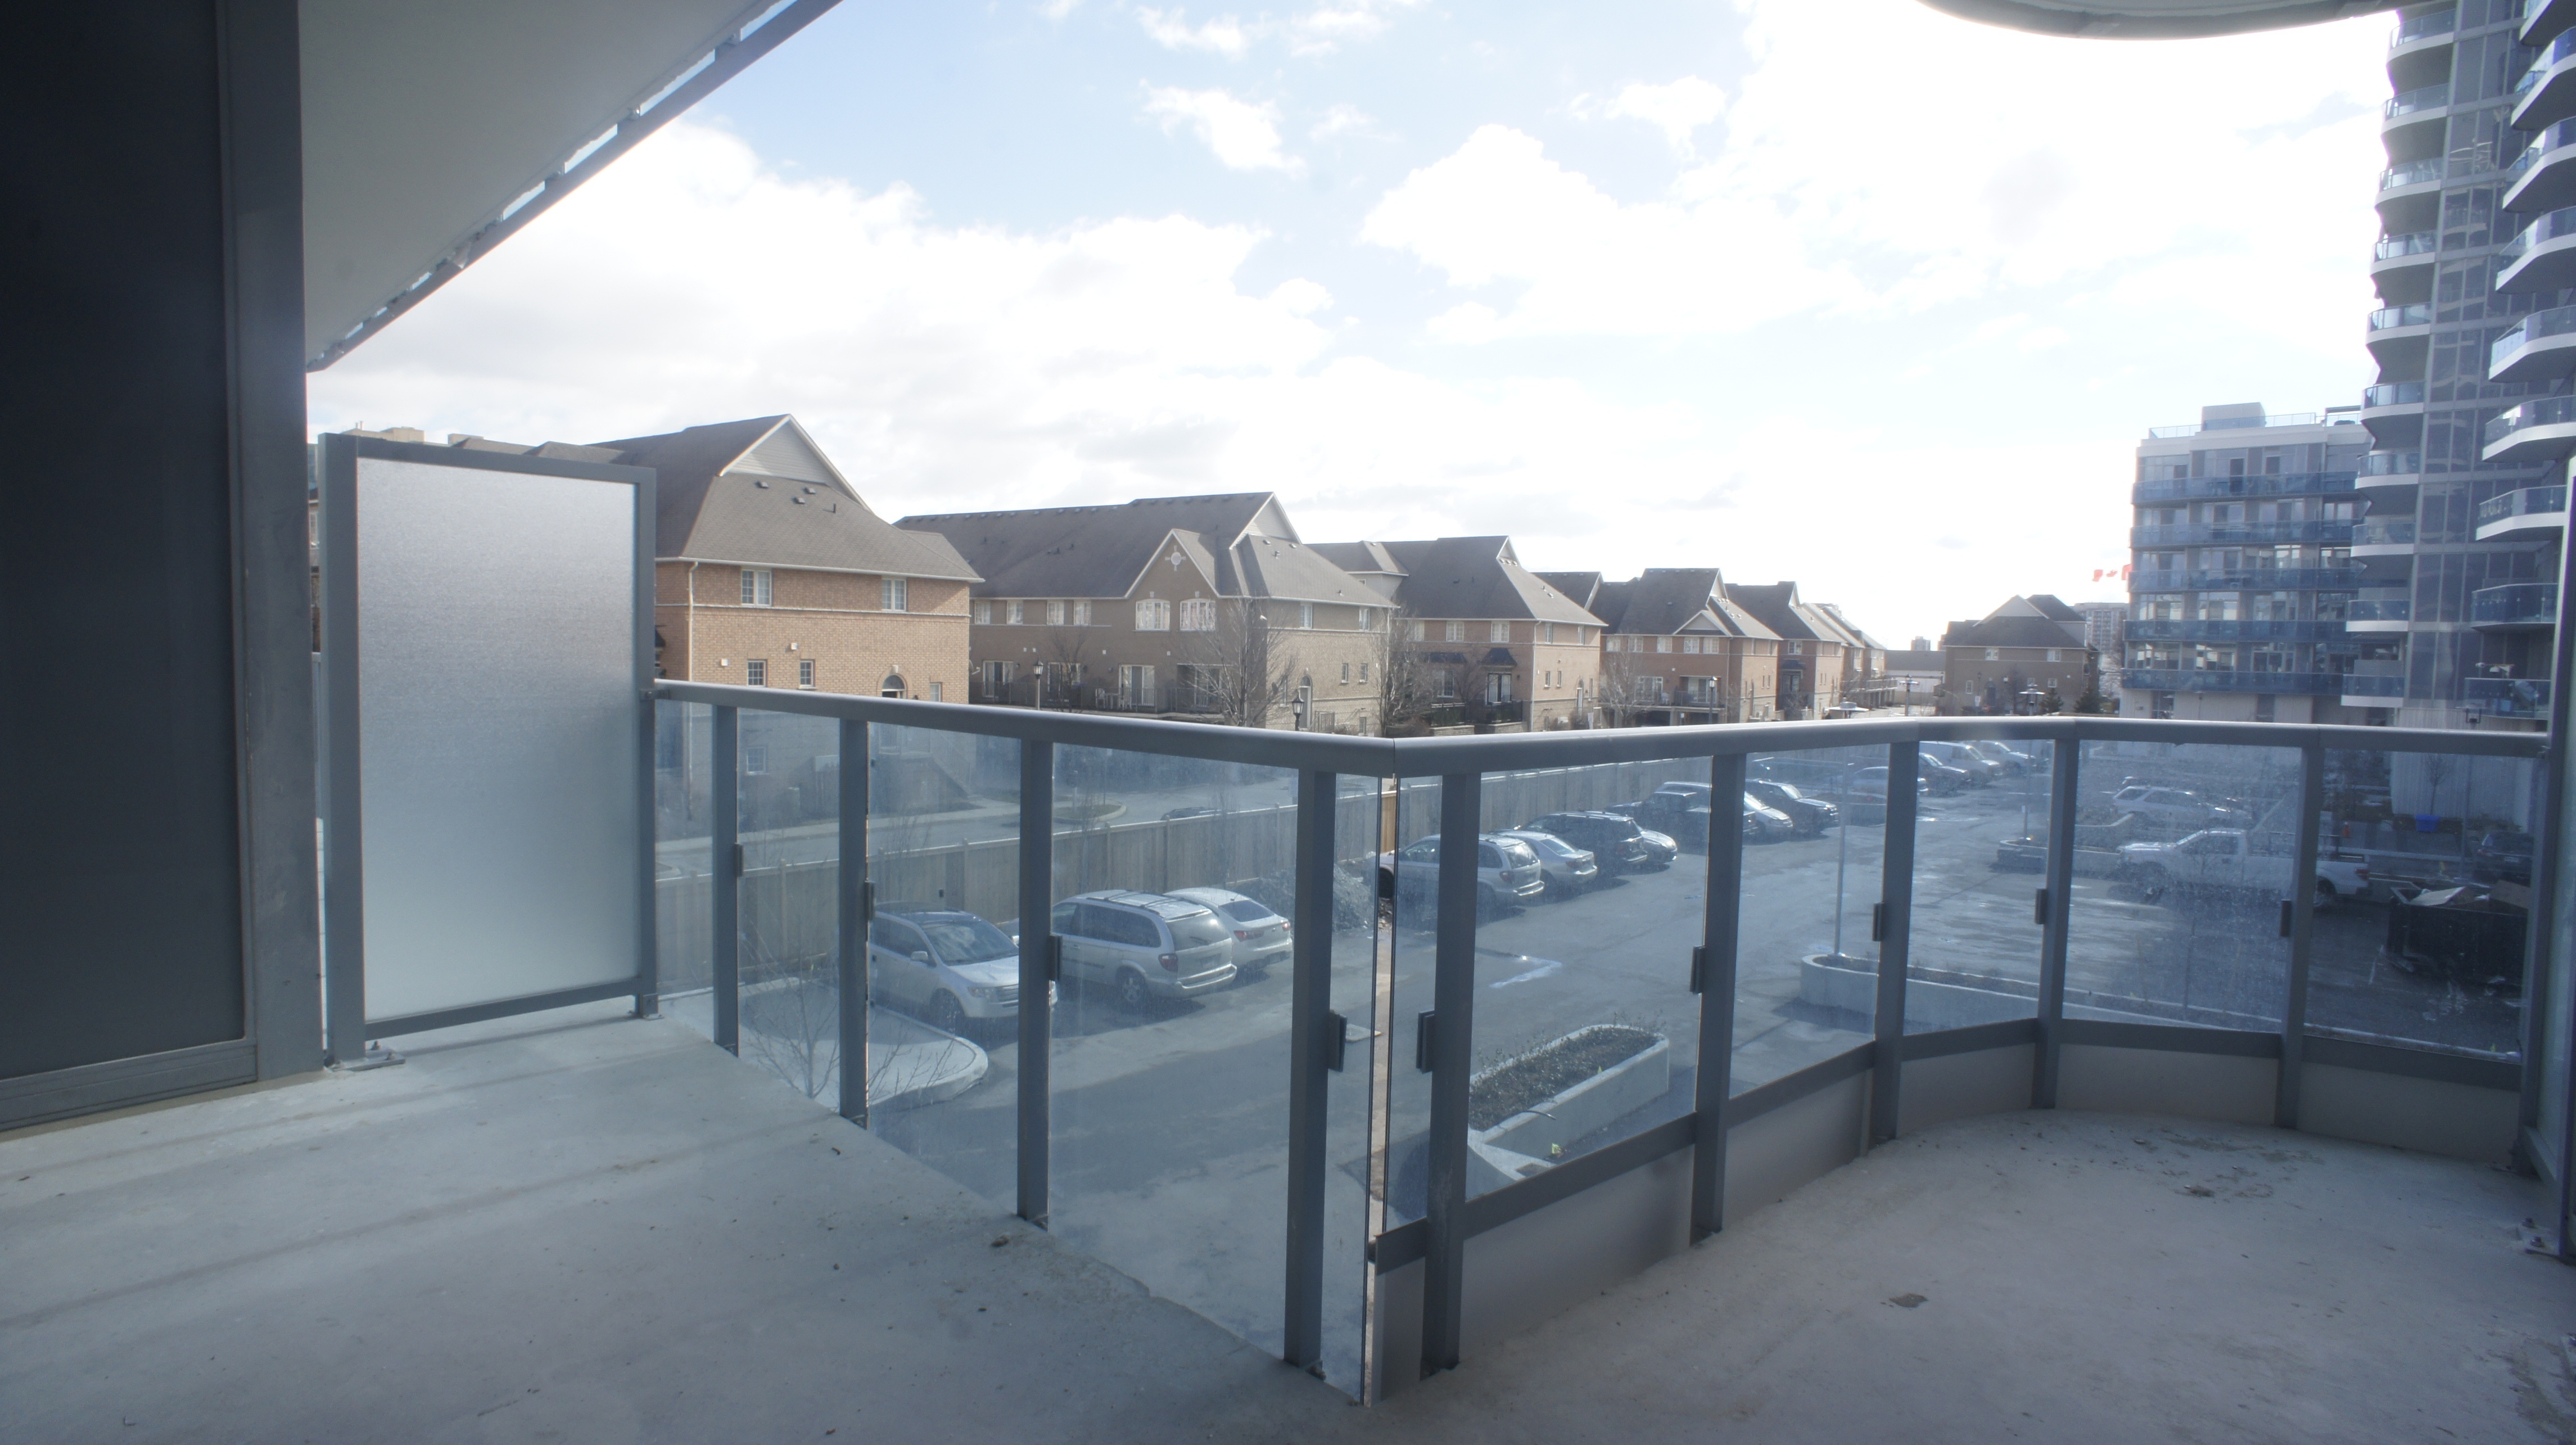 9471 Yonge Street #202 in Richmond Hill, ON is Now Available